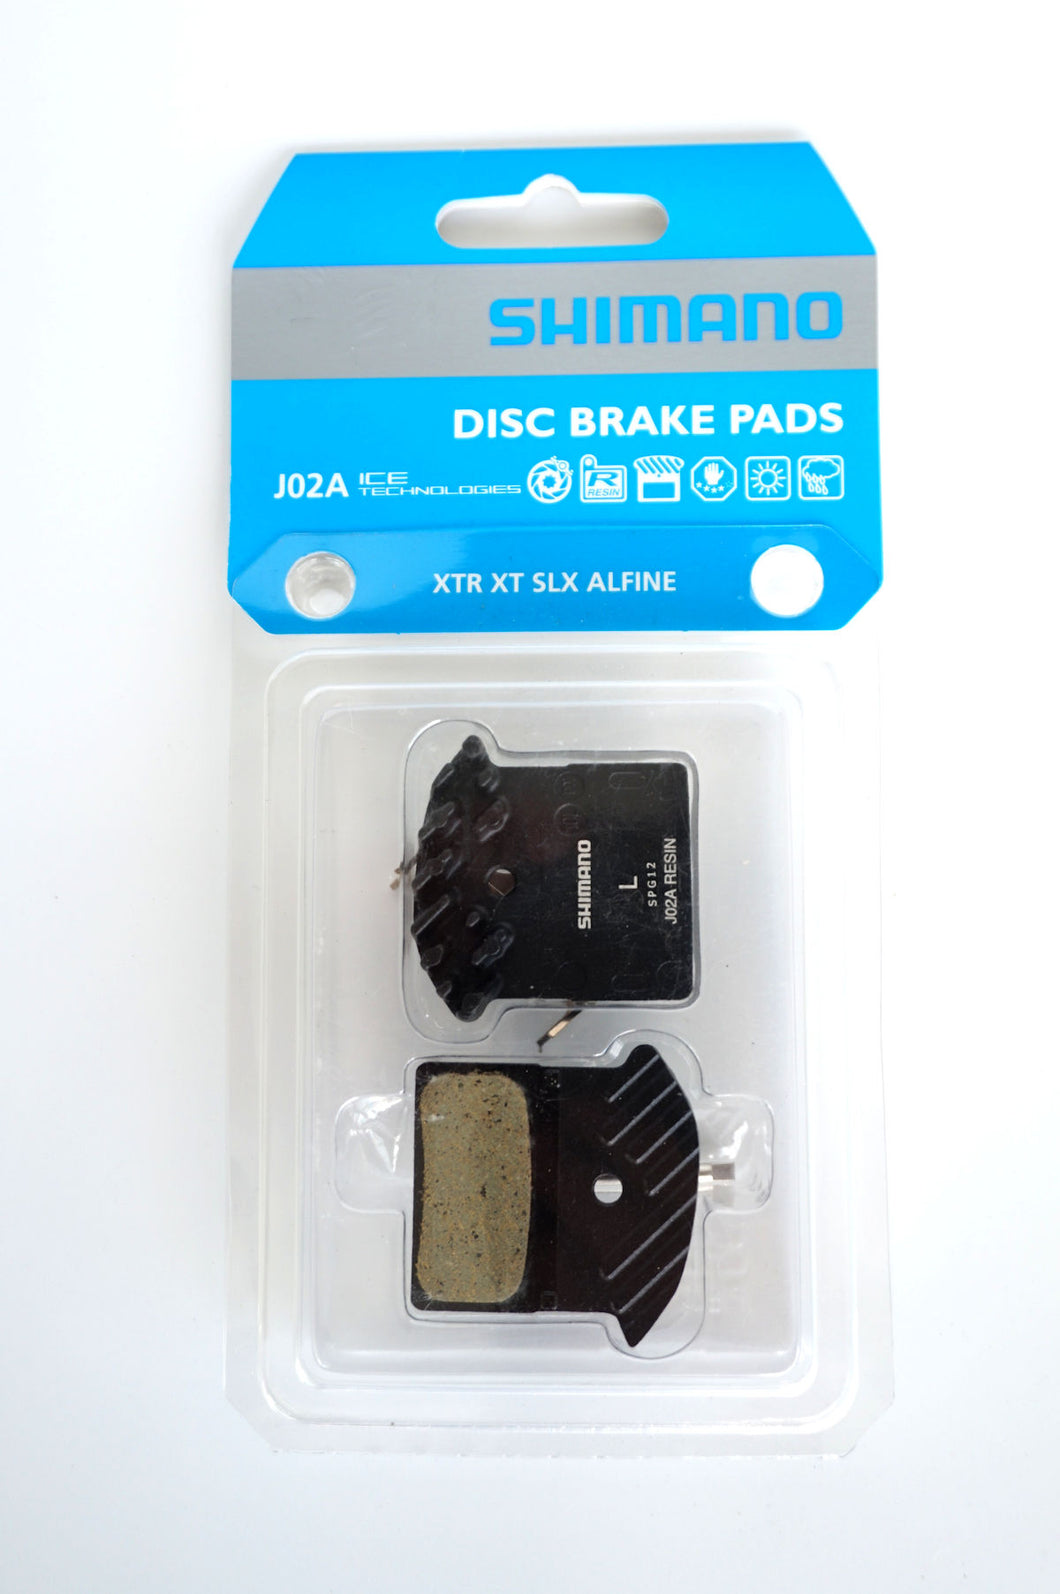 Shimano Resin Disc Brake Pads with Fins J02A